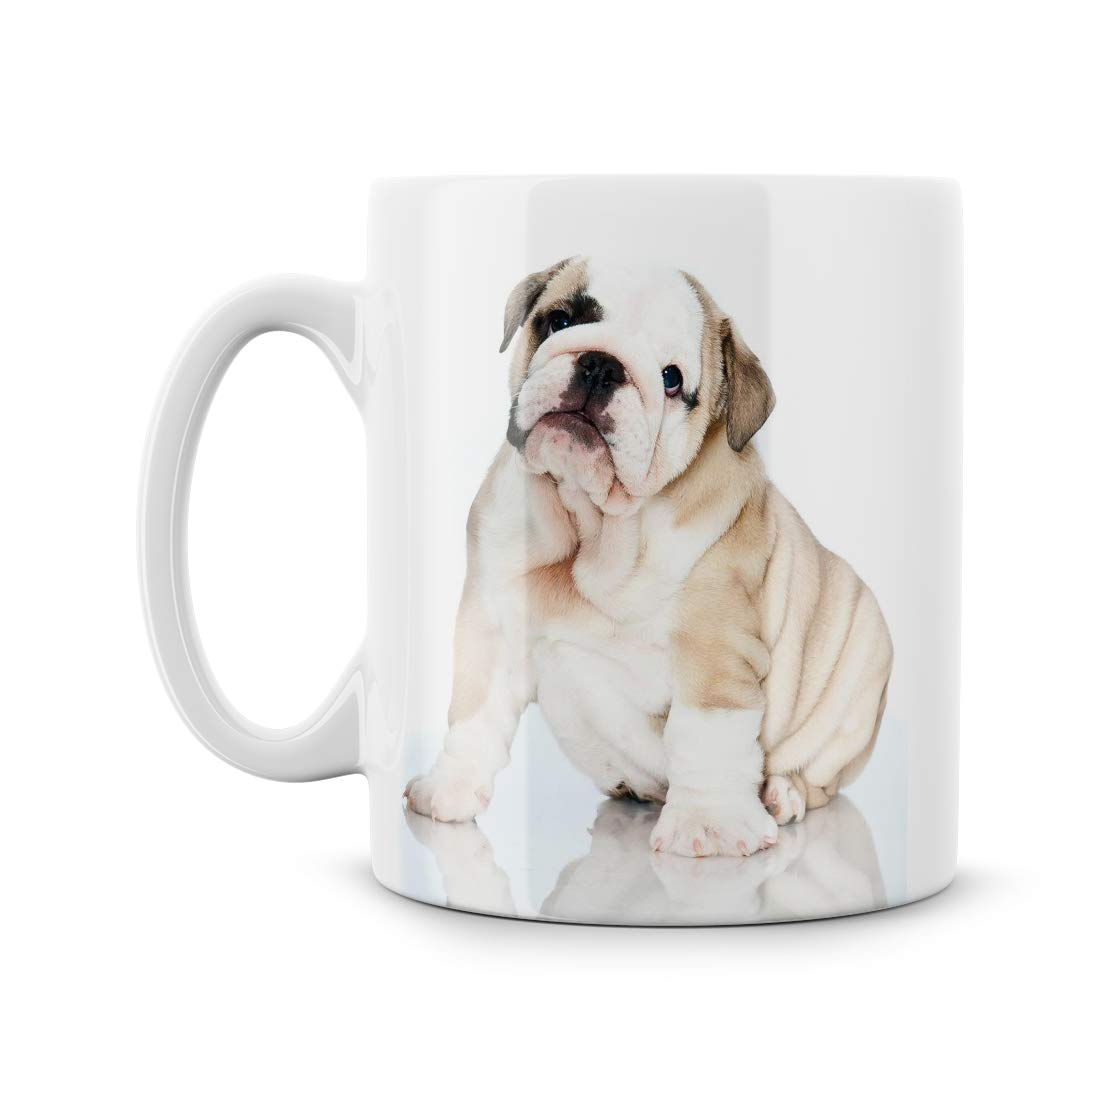 Details about ENGLISH BULLDOG COFFEE CUP VERY CUTE